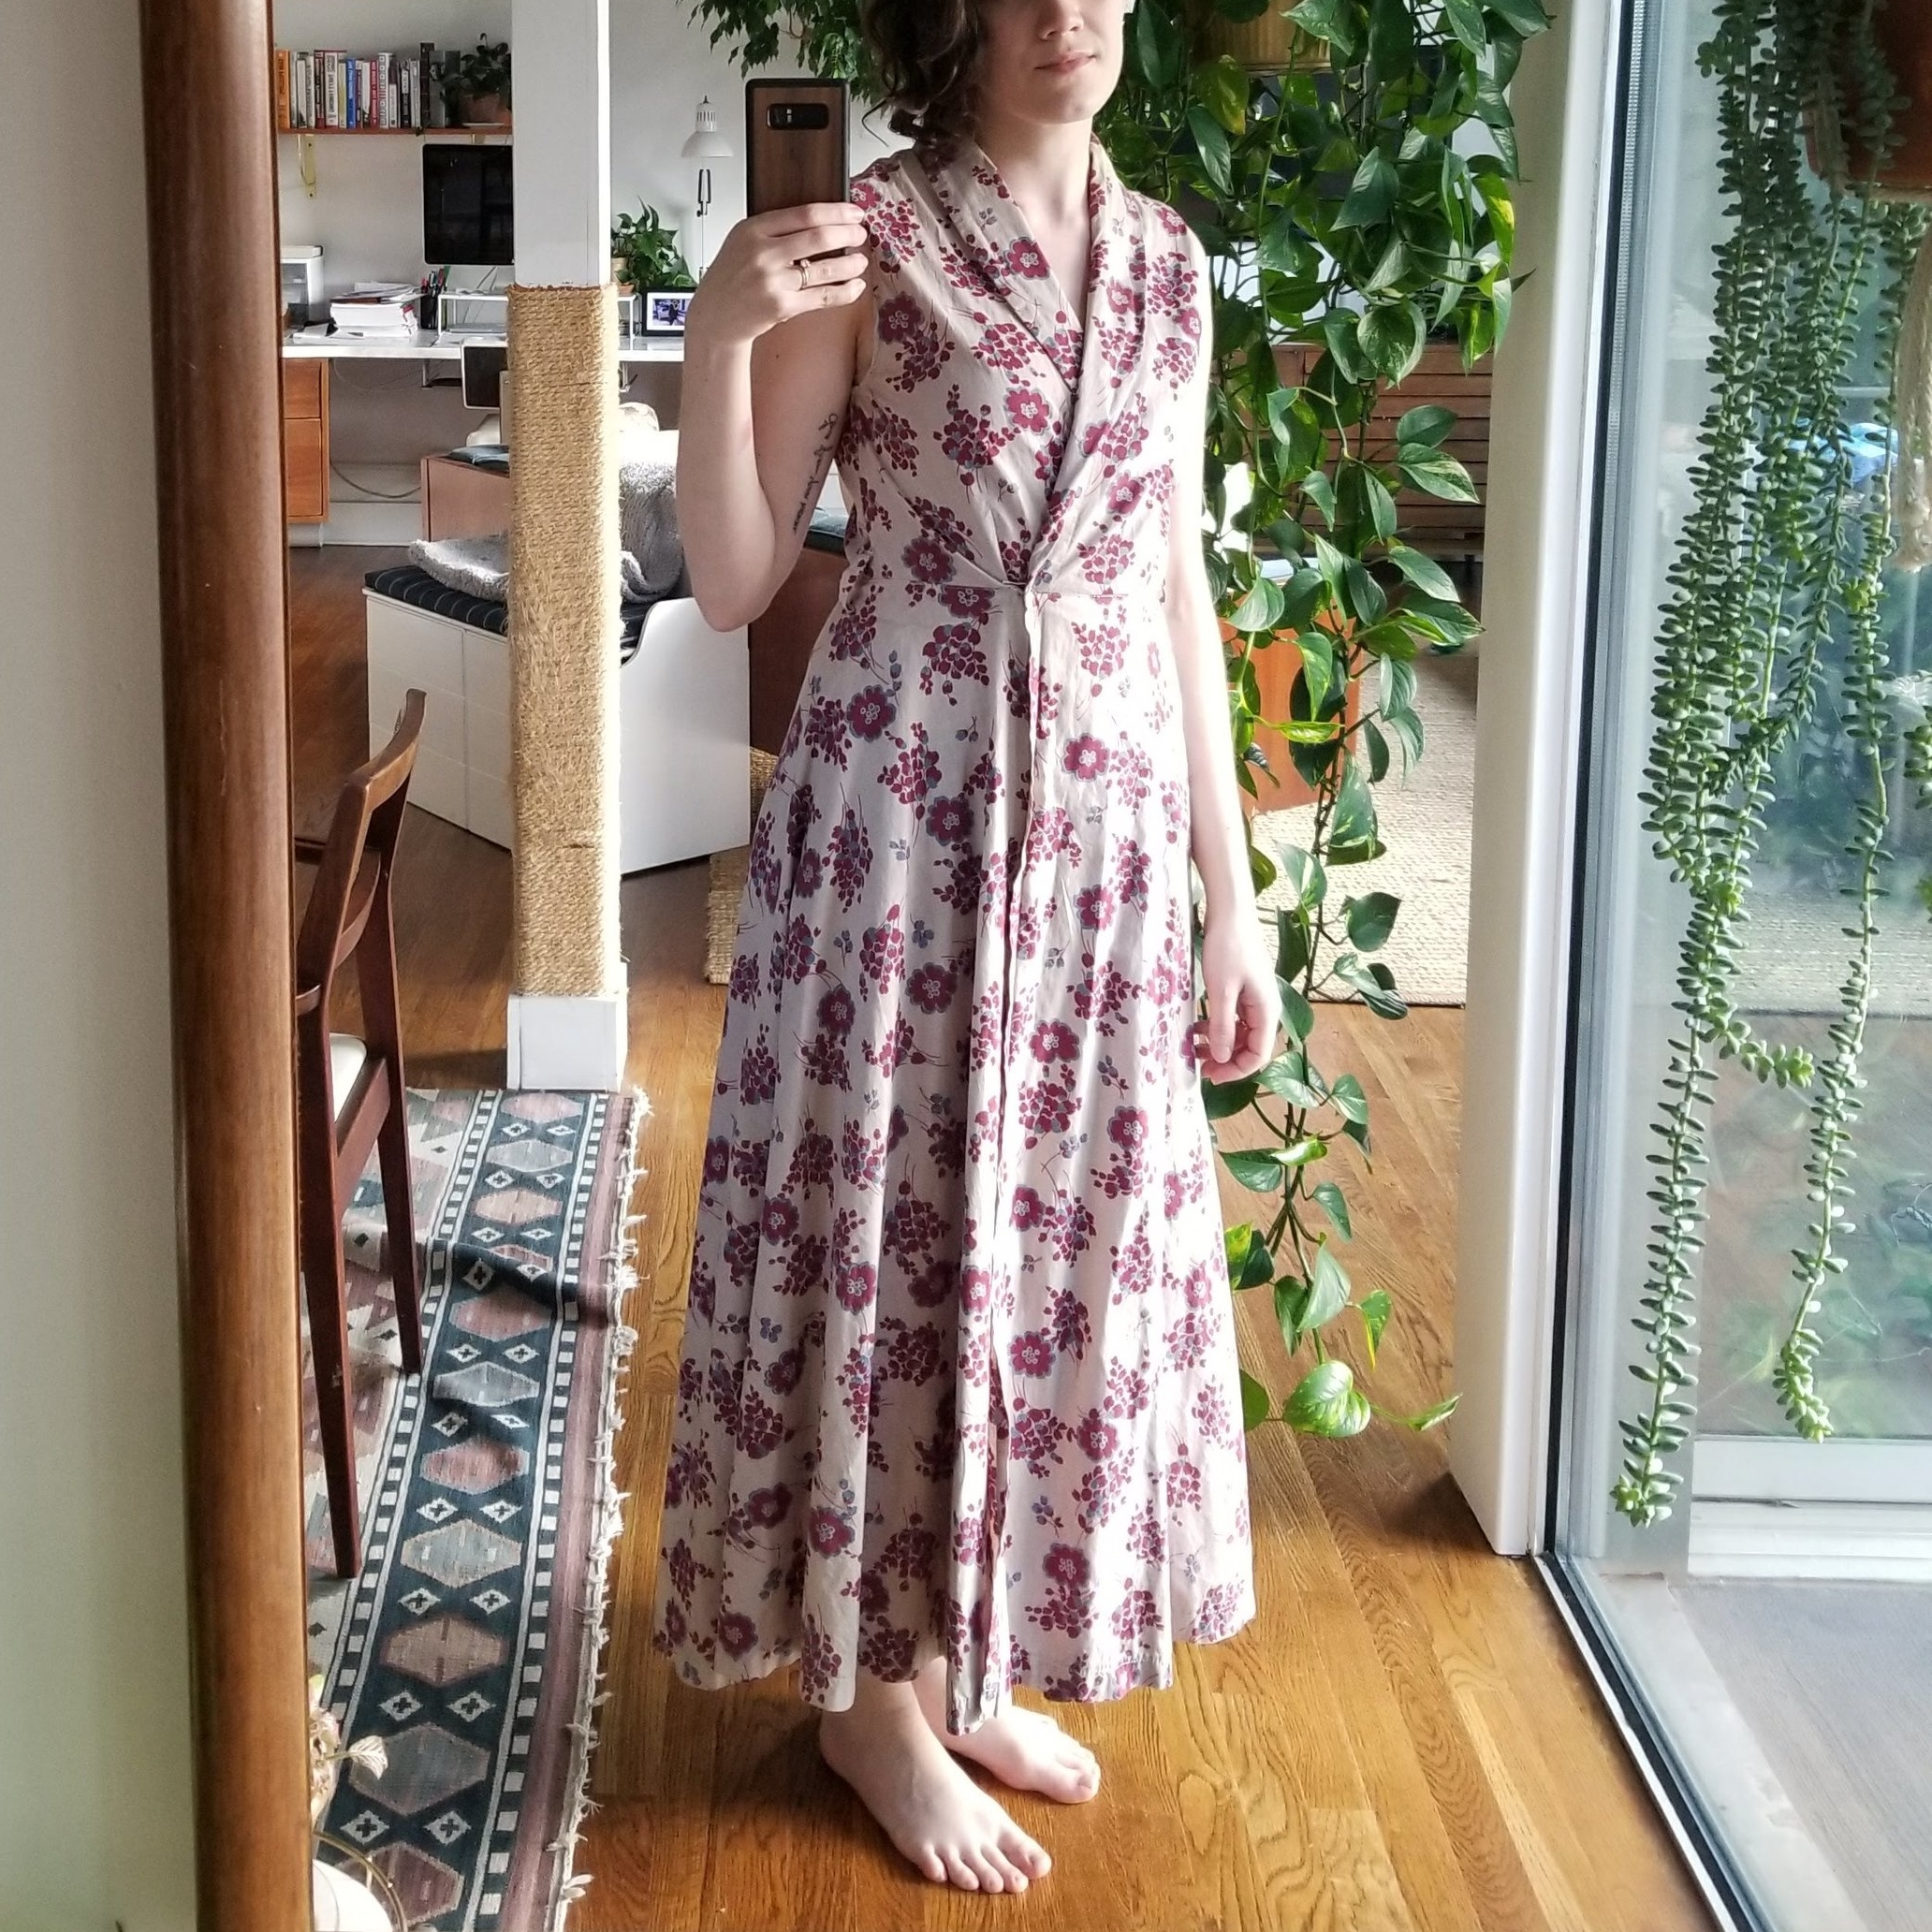 What do you think, fit for a 1947 landlady?